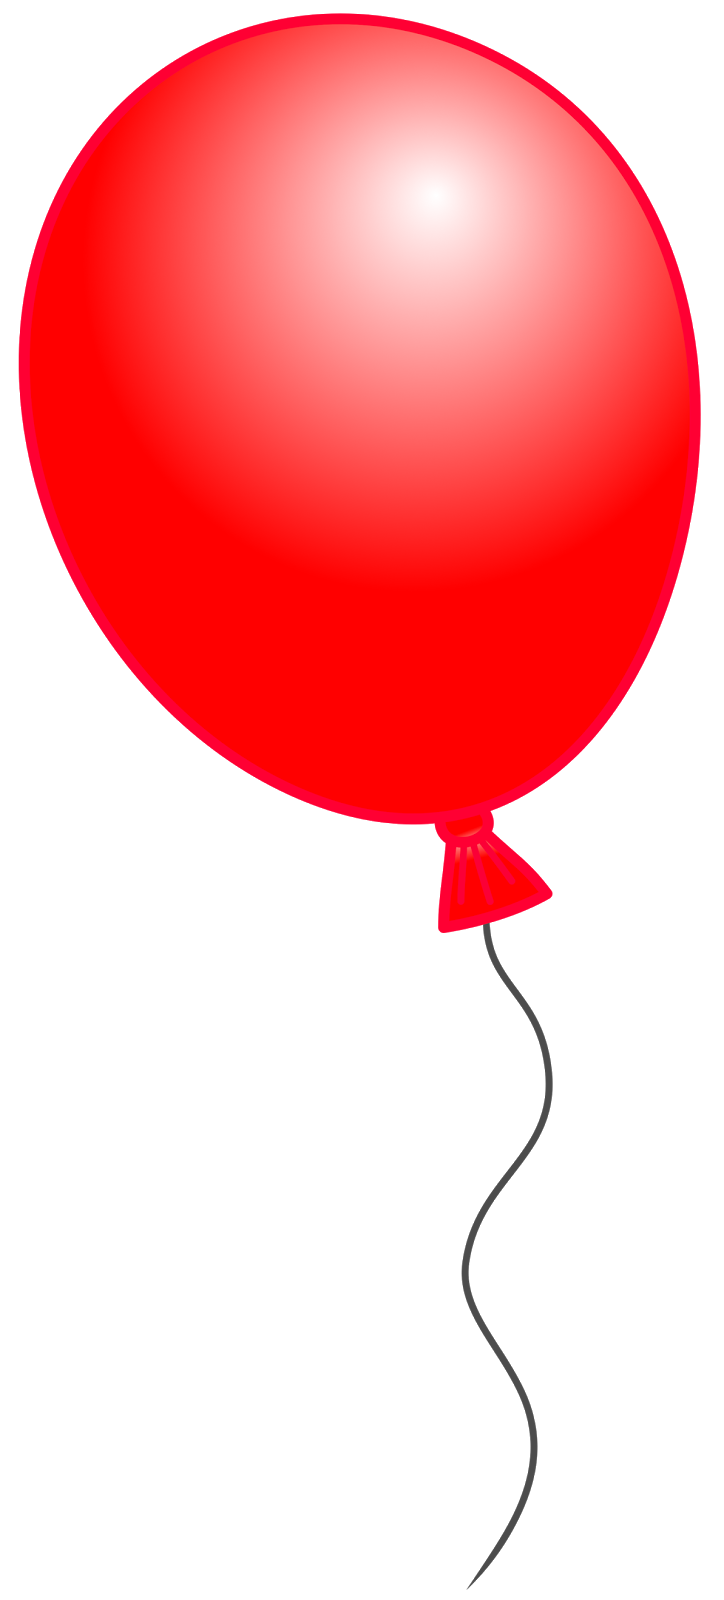 Baloons Clipart